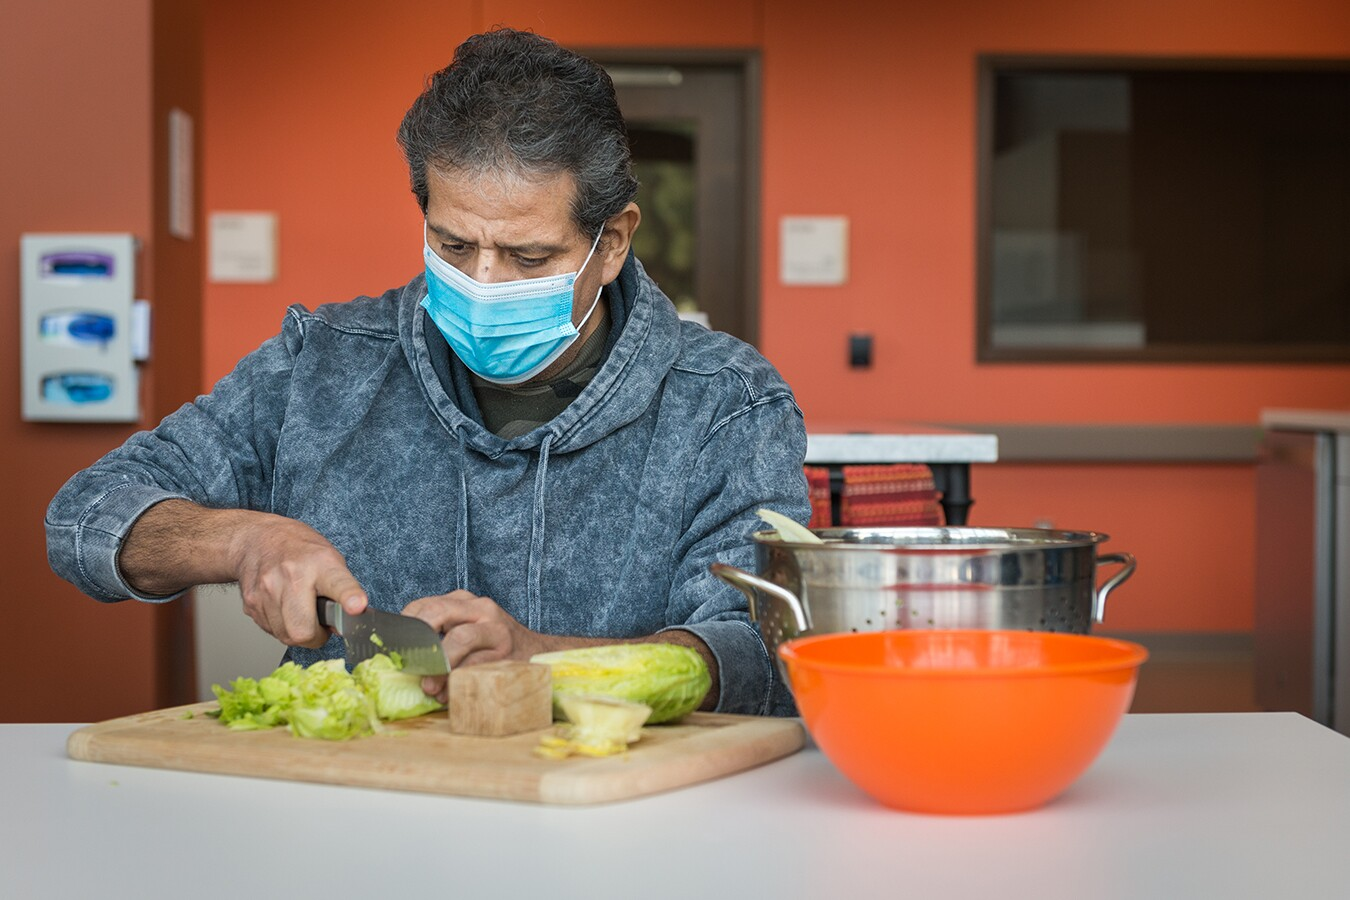 Perez was a cook at a hotel restaurant before he fell ill, so his occupational therapy involves meal preparation.